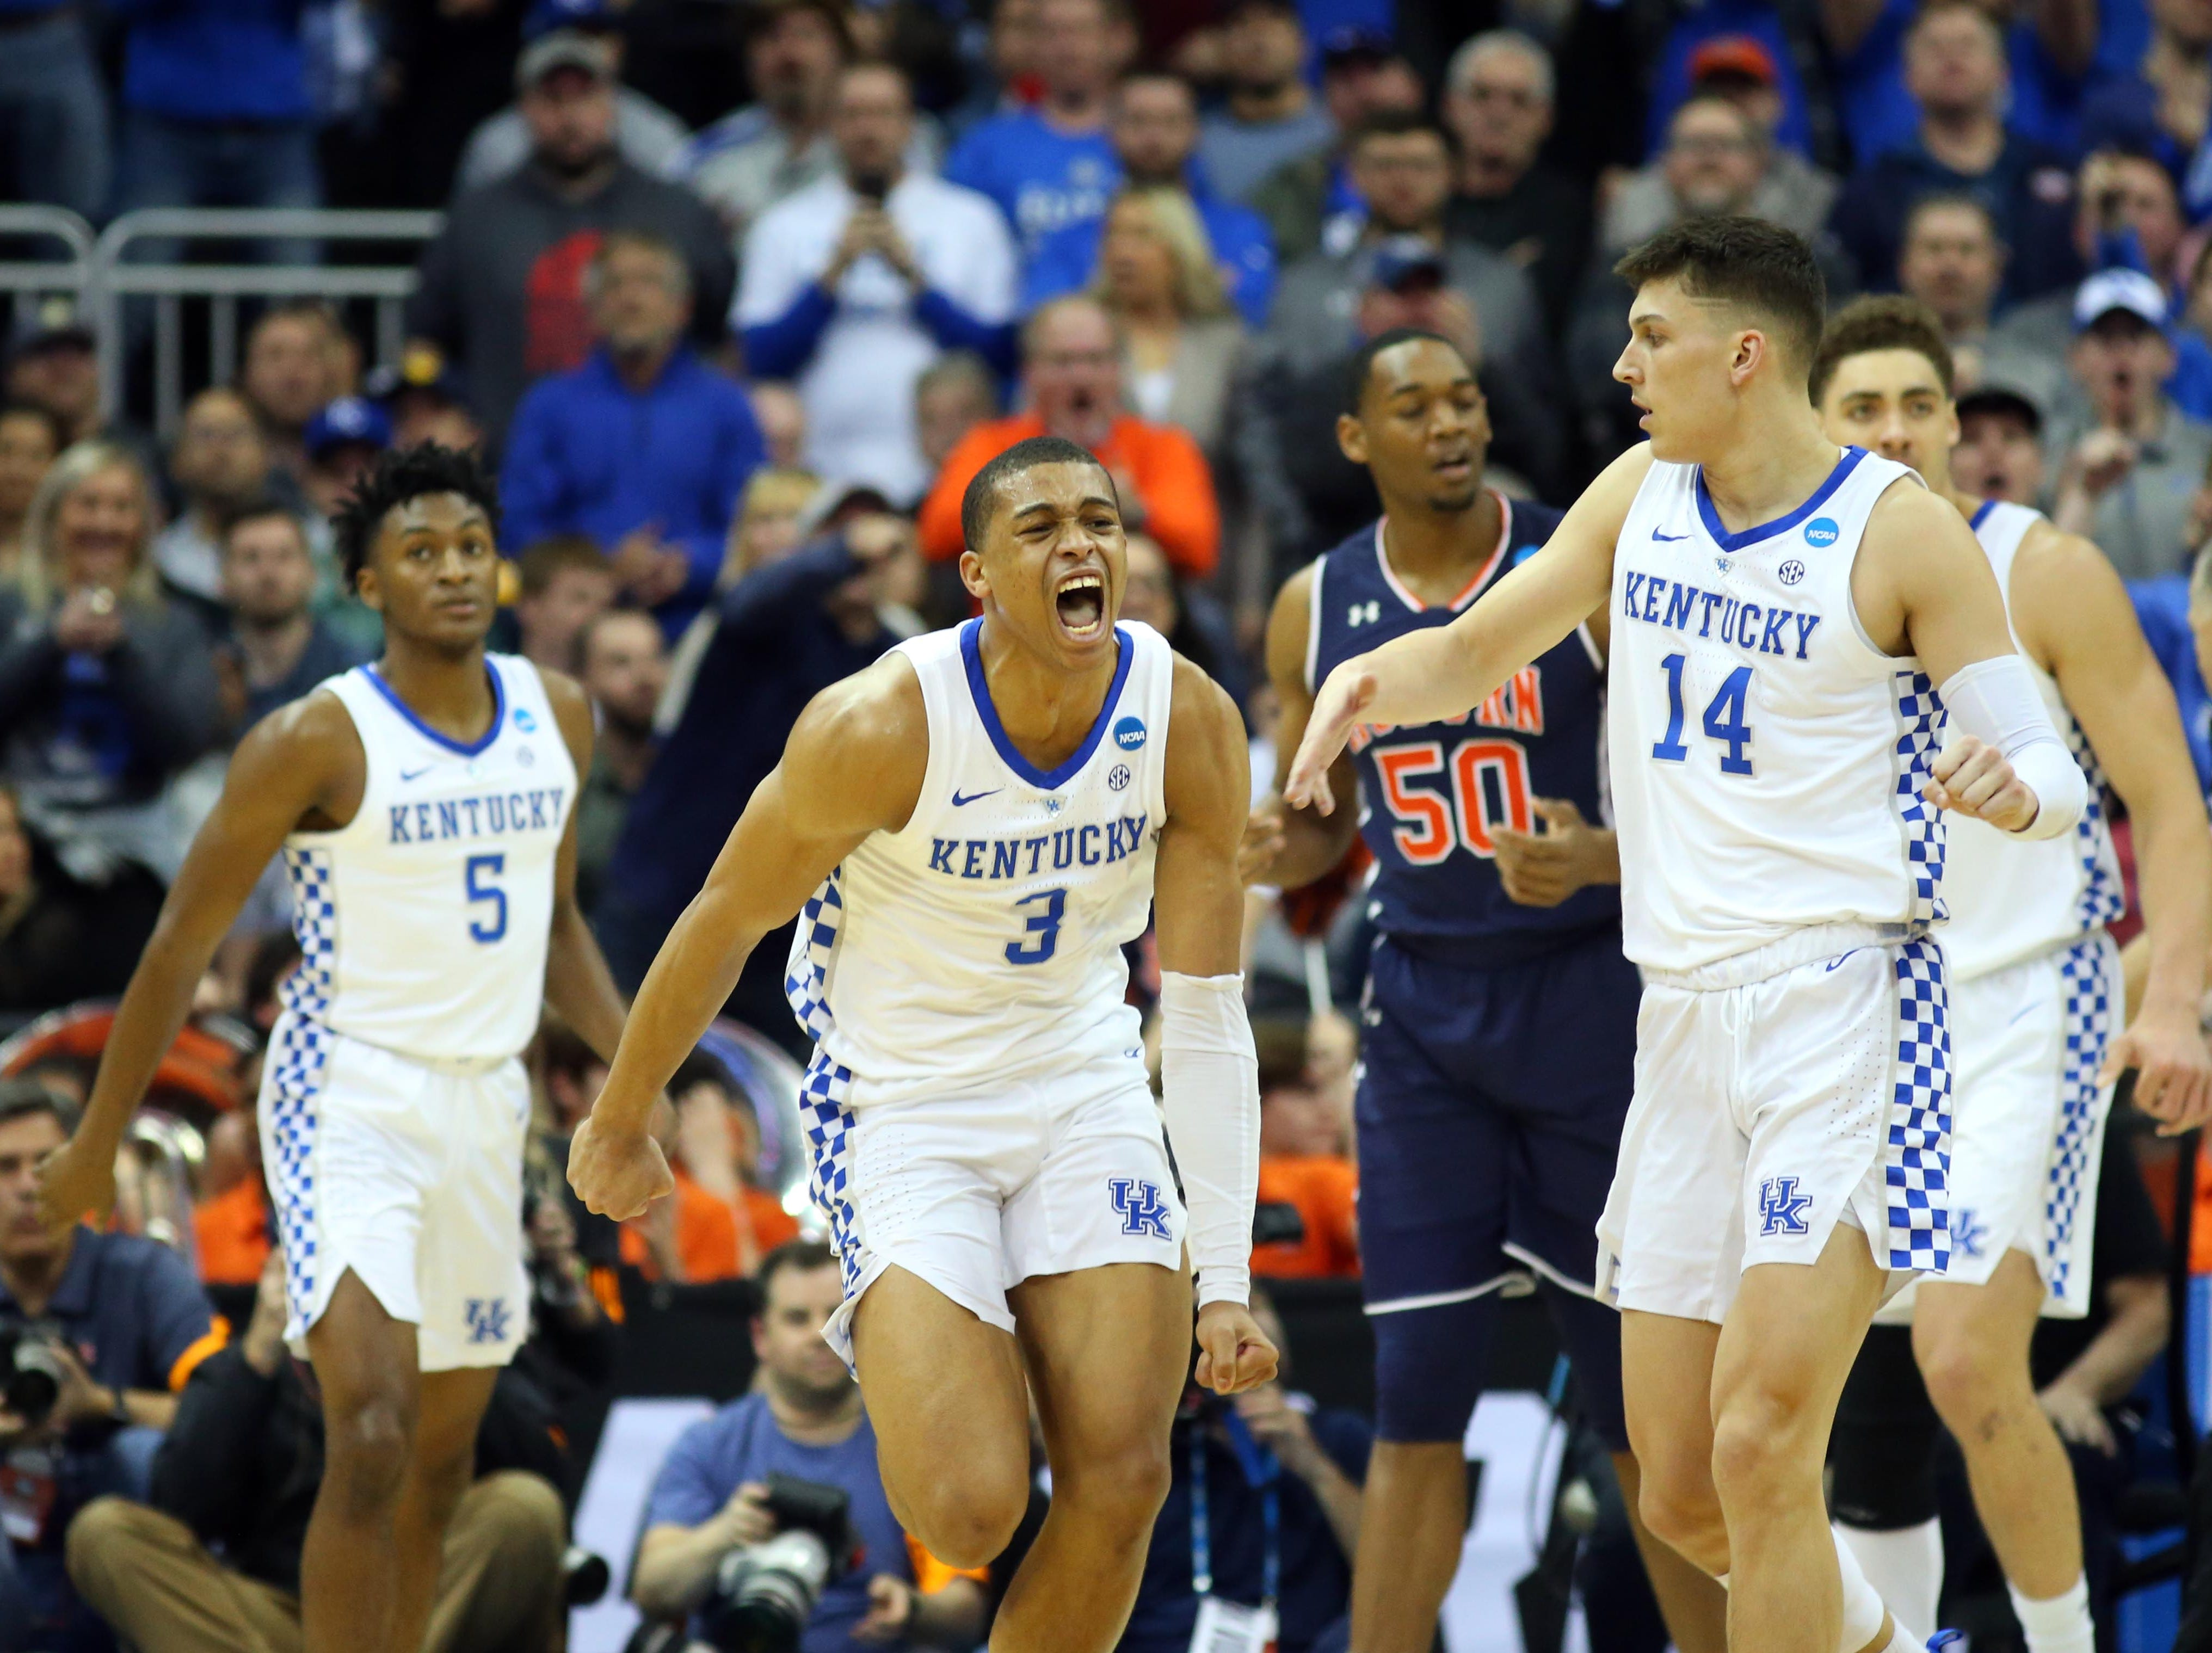 Mar 31, 2019; Kansas City, MO, United States; Kentucky Wildcats guard Keldon Johnson (3) celebrates against the Auburn Tigers during the second half in the championship game of the midwest regional of the 2019 NCAA Tournament at Sprint Center. Mandatory Credit: Jay Biggerstaff-USA TODAY Sports